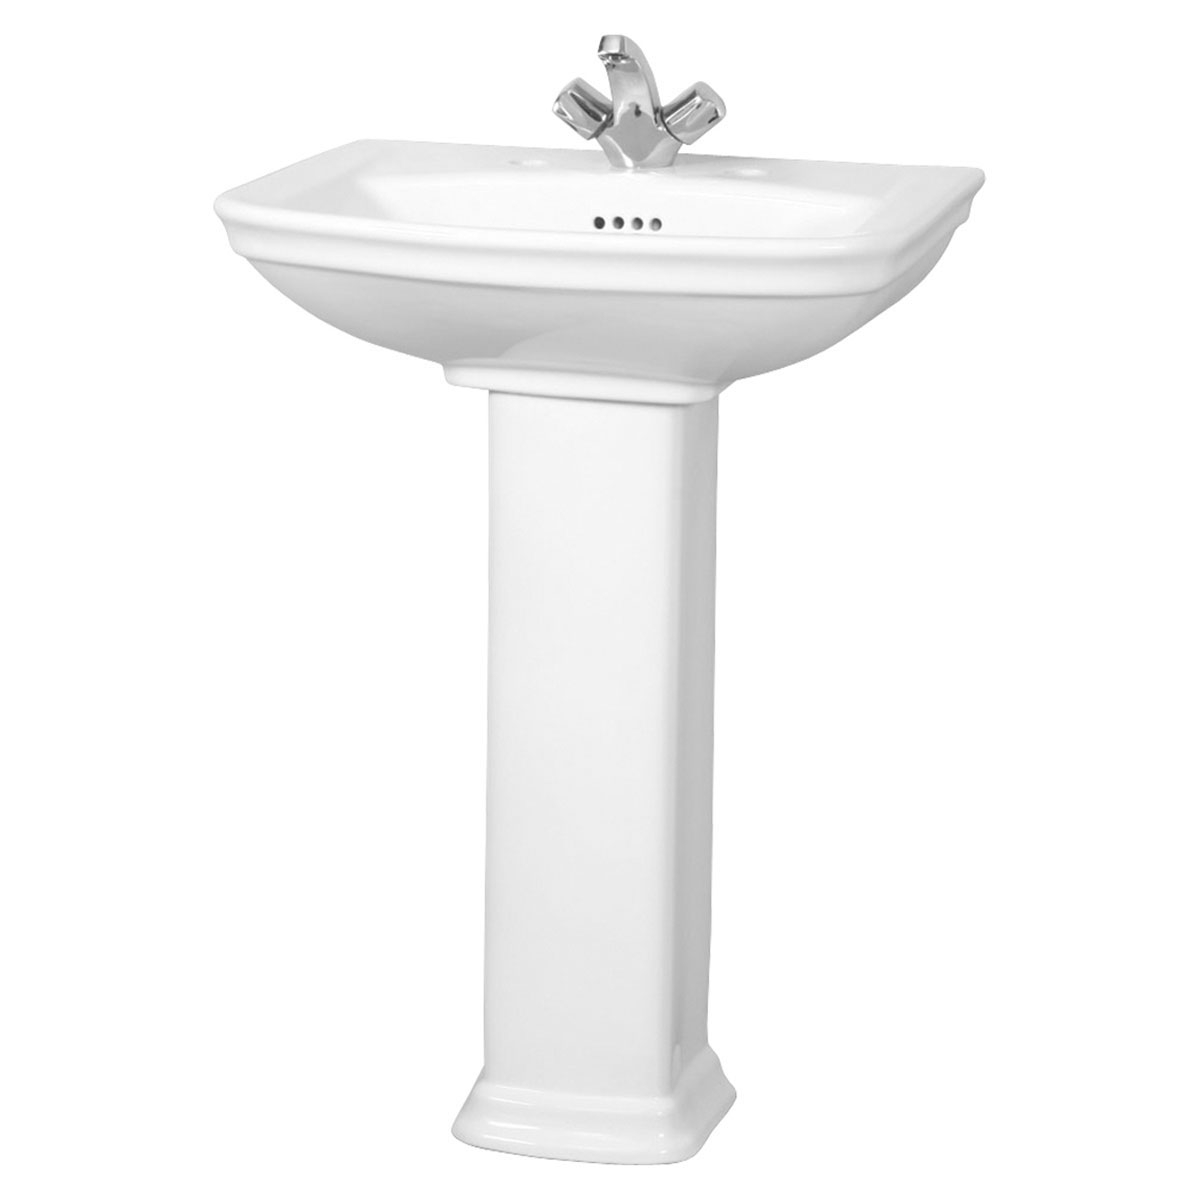 VitrA Serenada Value Suite Close Coupled Toilet 2 Tap Hole Basin-1